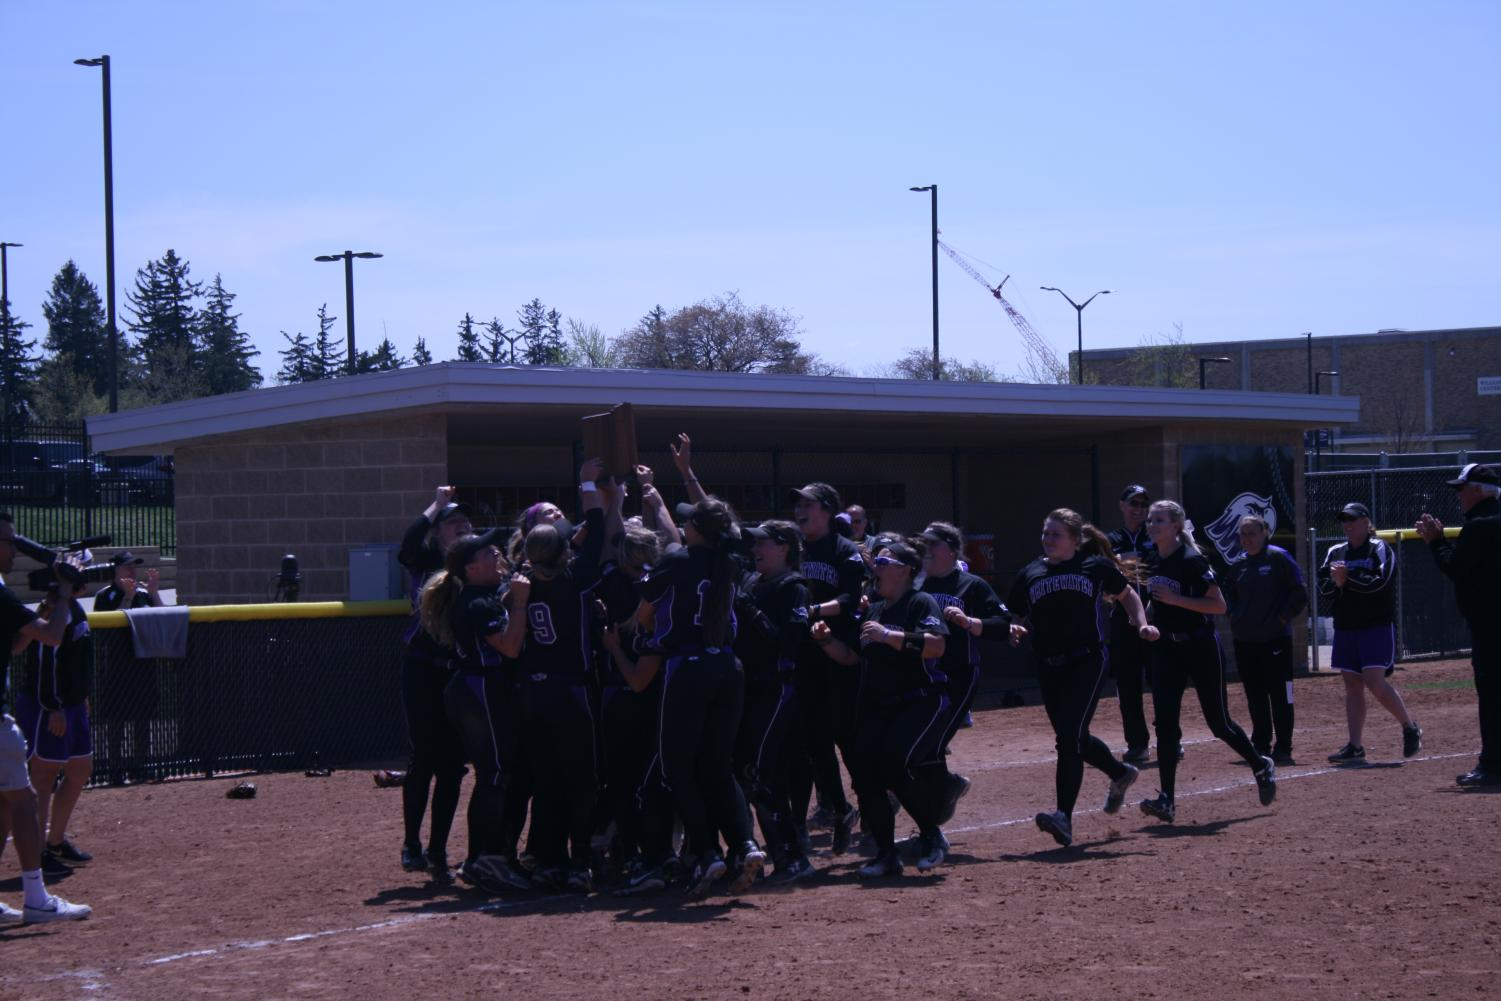 The Warhawks celebrate after recieving the WIAC Championship Tournament trophy for the sixth consecutive season. The six straight tournament championships is the longest streak in conference history.